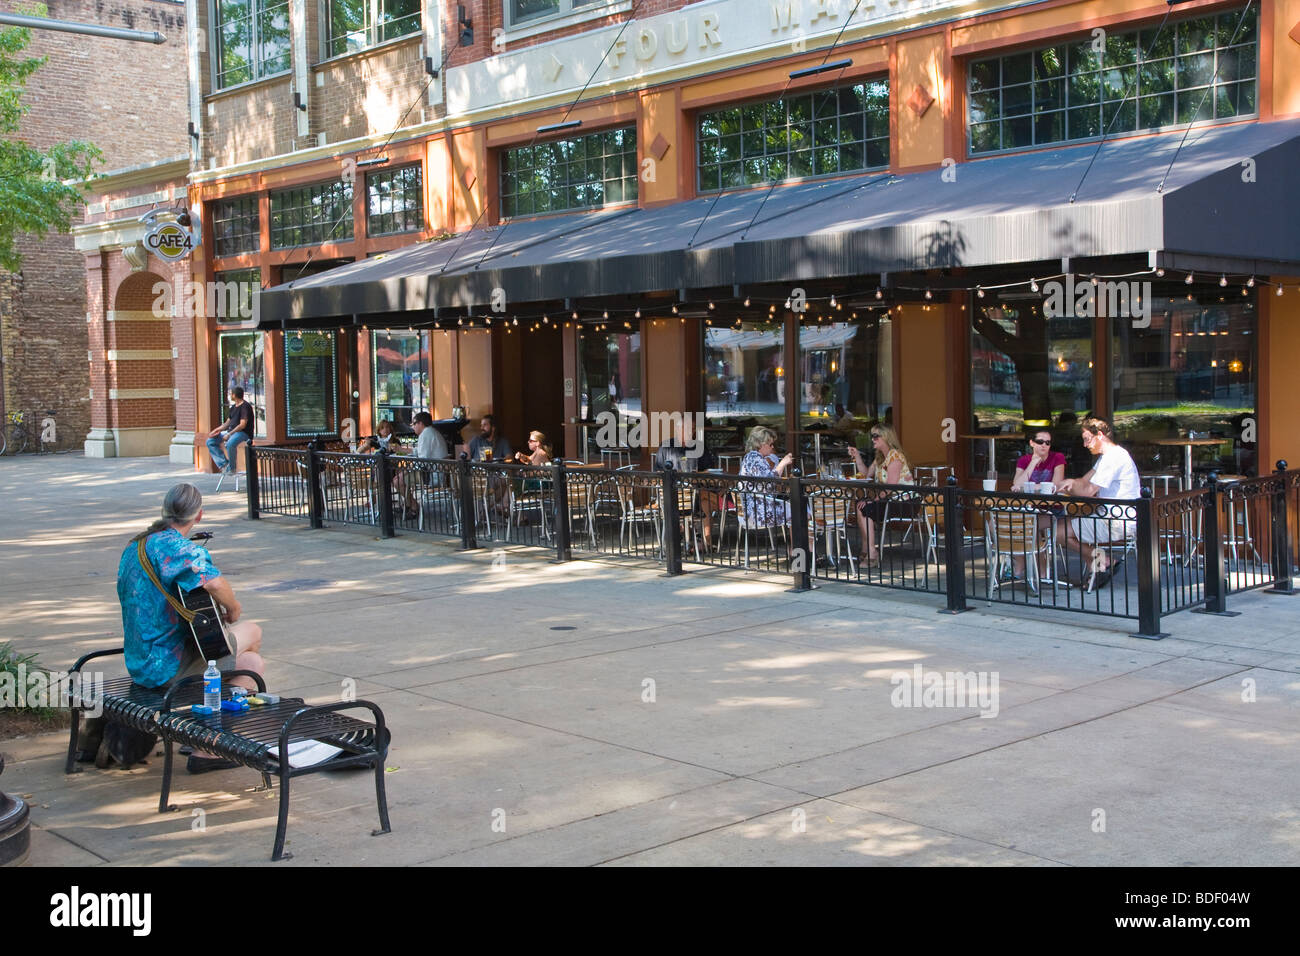 Market Square Shopping And Dining Area In Downtown Knoxville